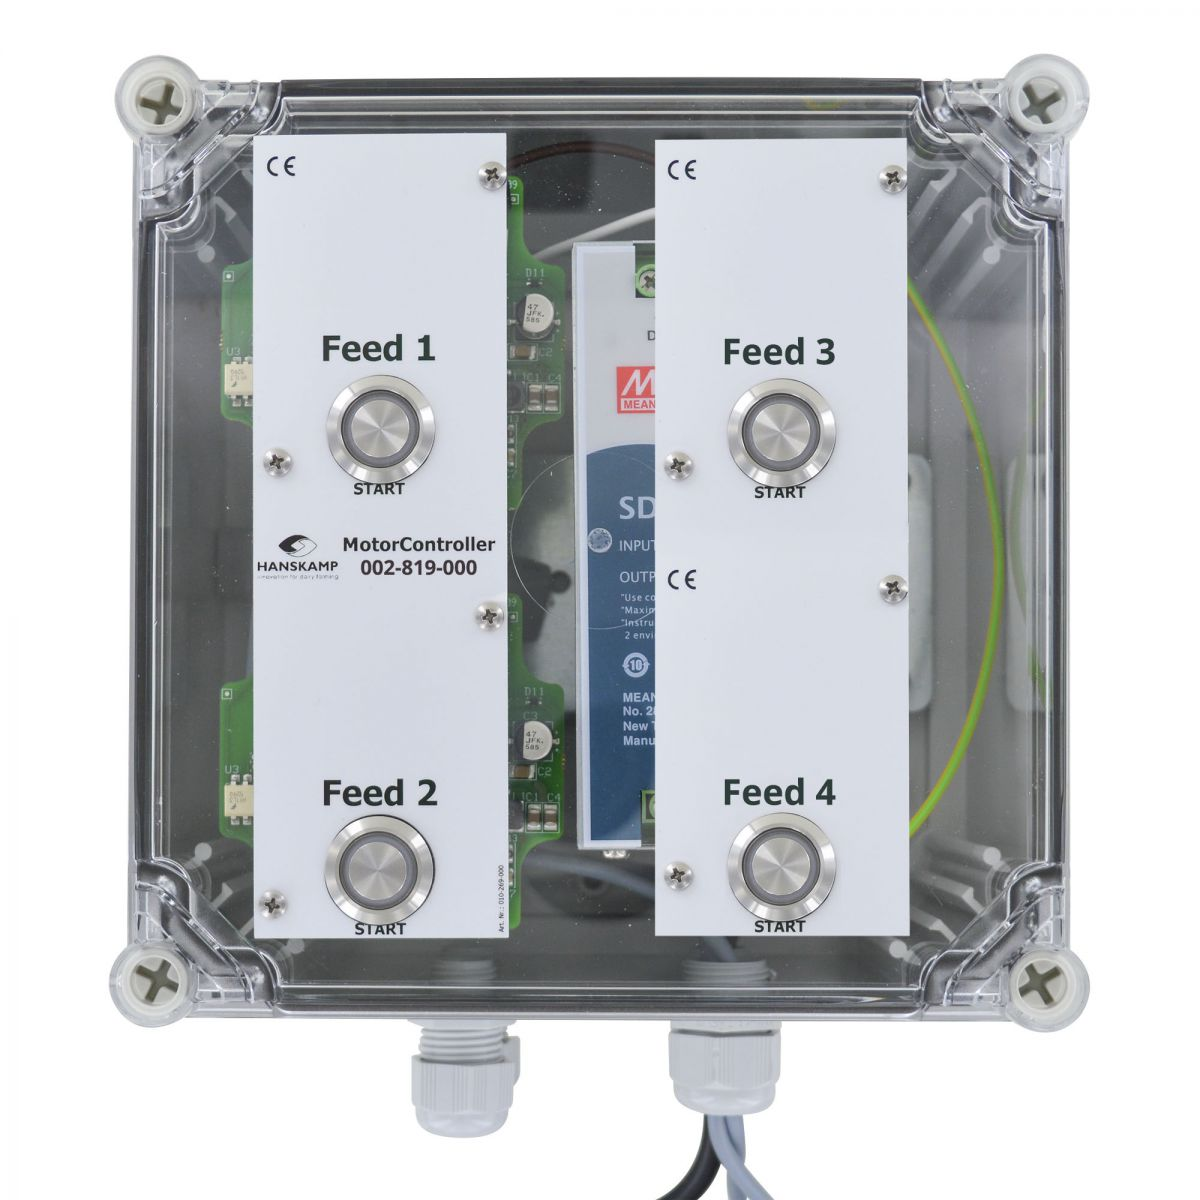 motorcontroller 4 types of feed pipefeeder highspeed with power supply 24v dc 10a in enclosure